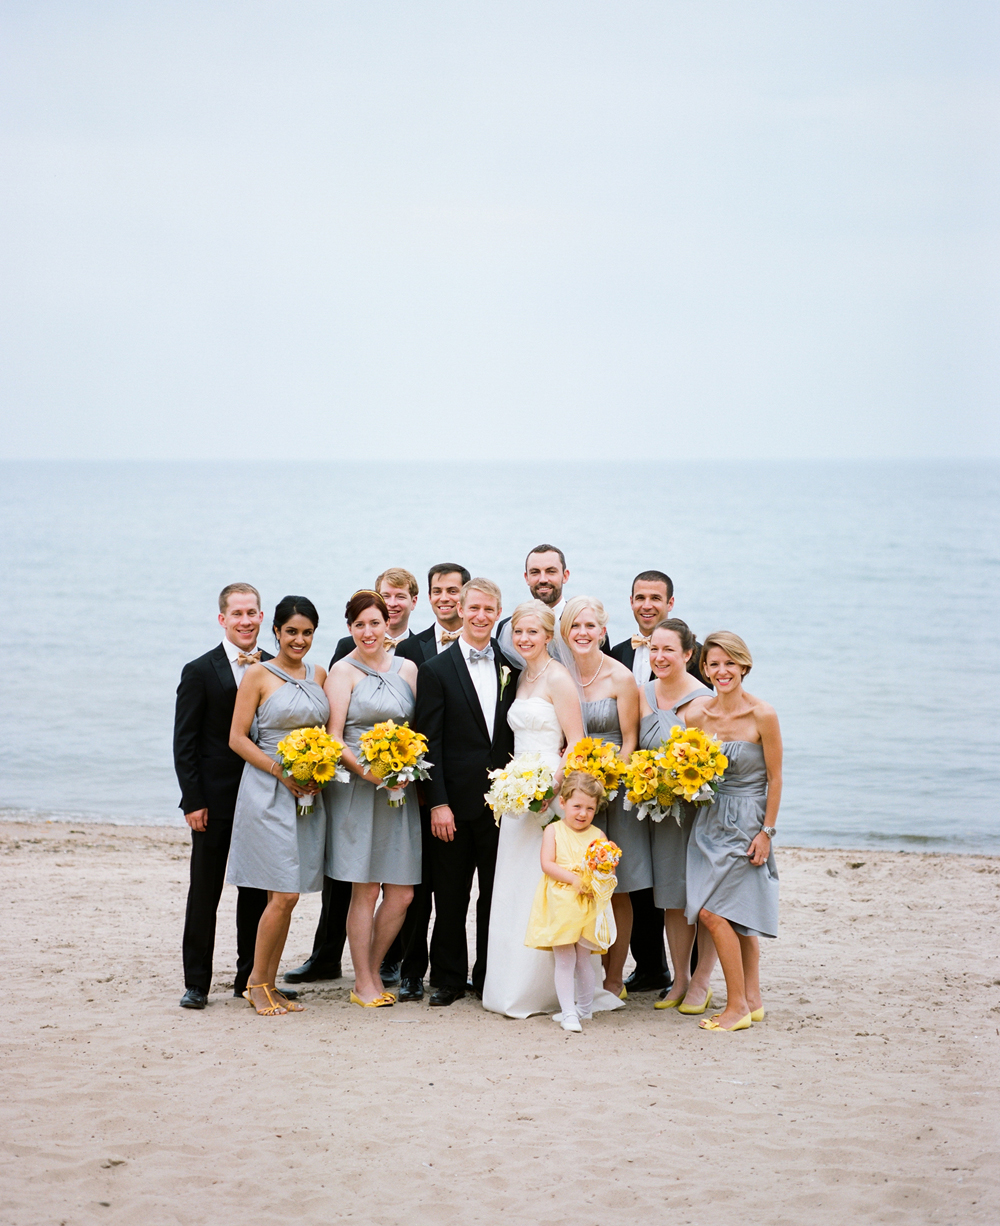 pritzlaff-milwaukee-wedding-photographer-20